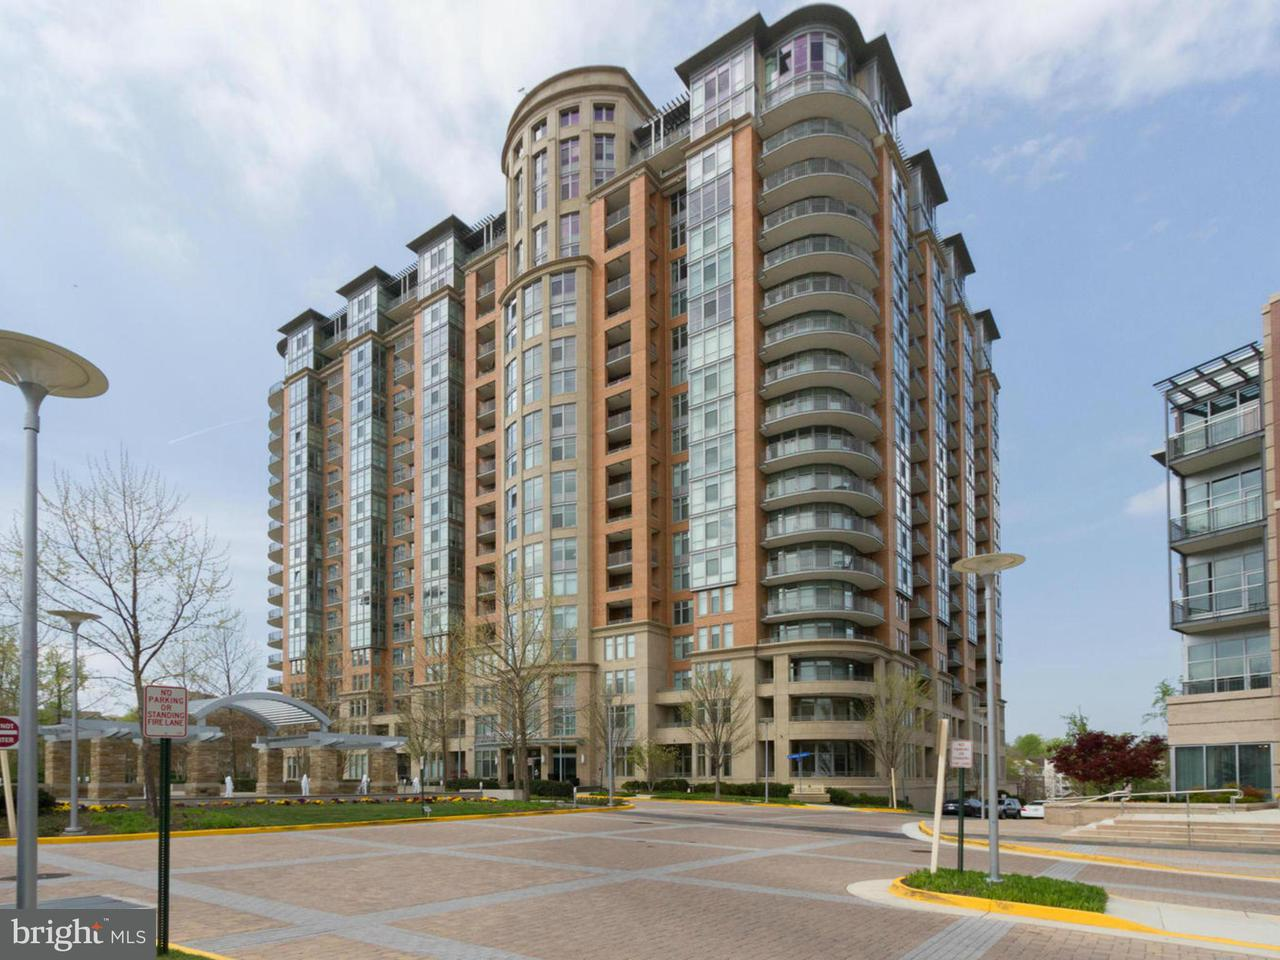 Condominium for Sale at 8220 Crestwood Heights Dr #1001 8220 Crestwood Heights Dr #1001 McLean, Virginia 22102 United States